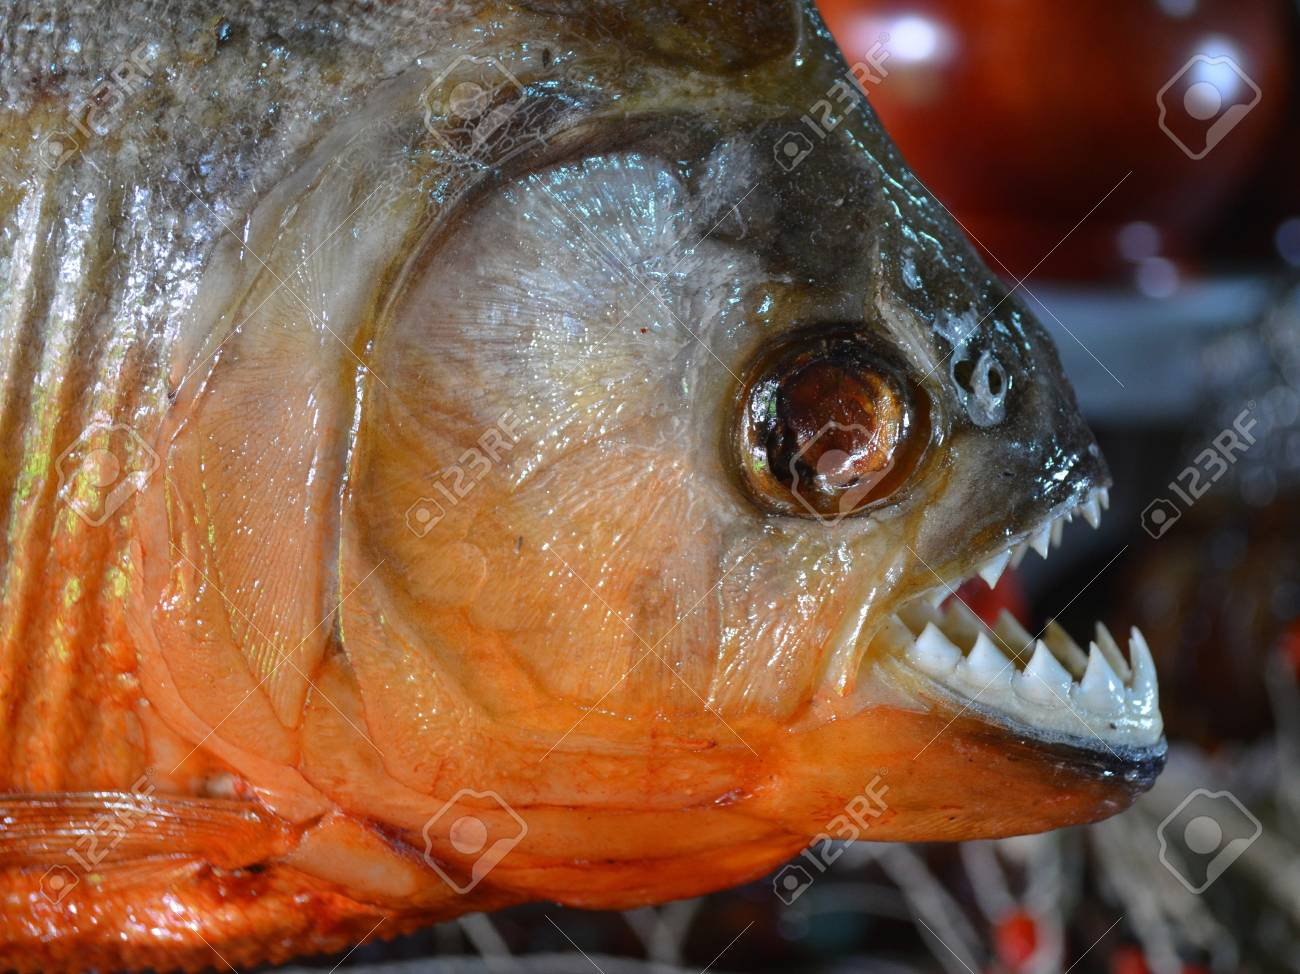 Red-bellied Piranhas on sale at a tourist market in Iquitos,